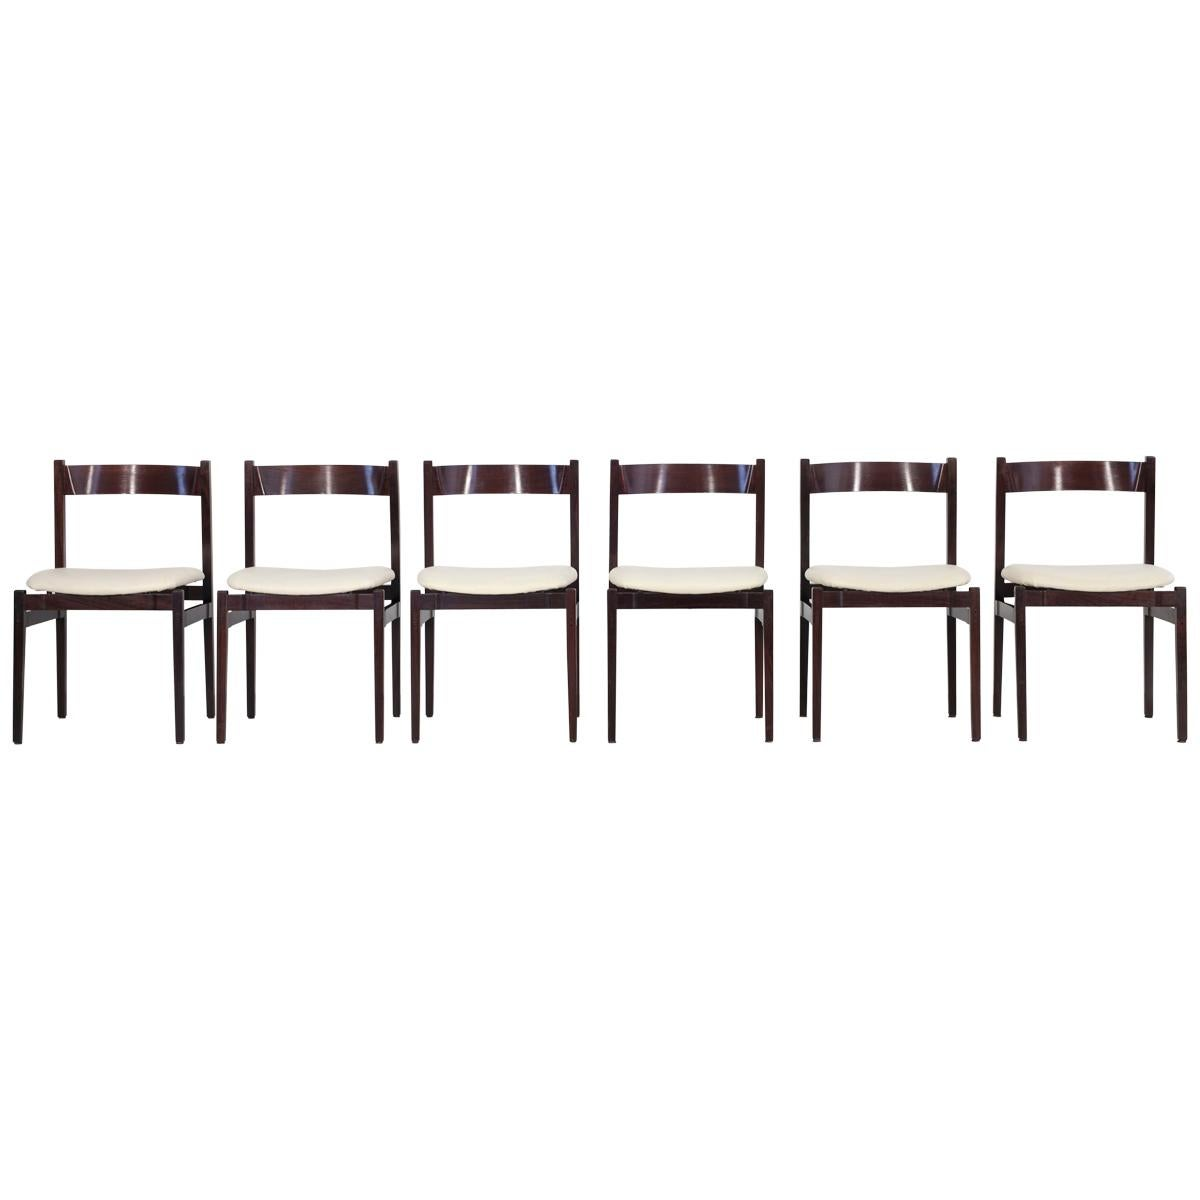 "Set of 6 ""Model 101"" Dining Chairs, Designed by Gianfranco Frattini"